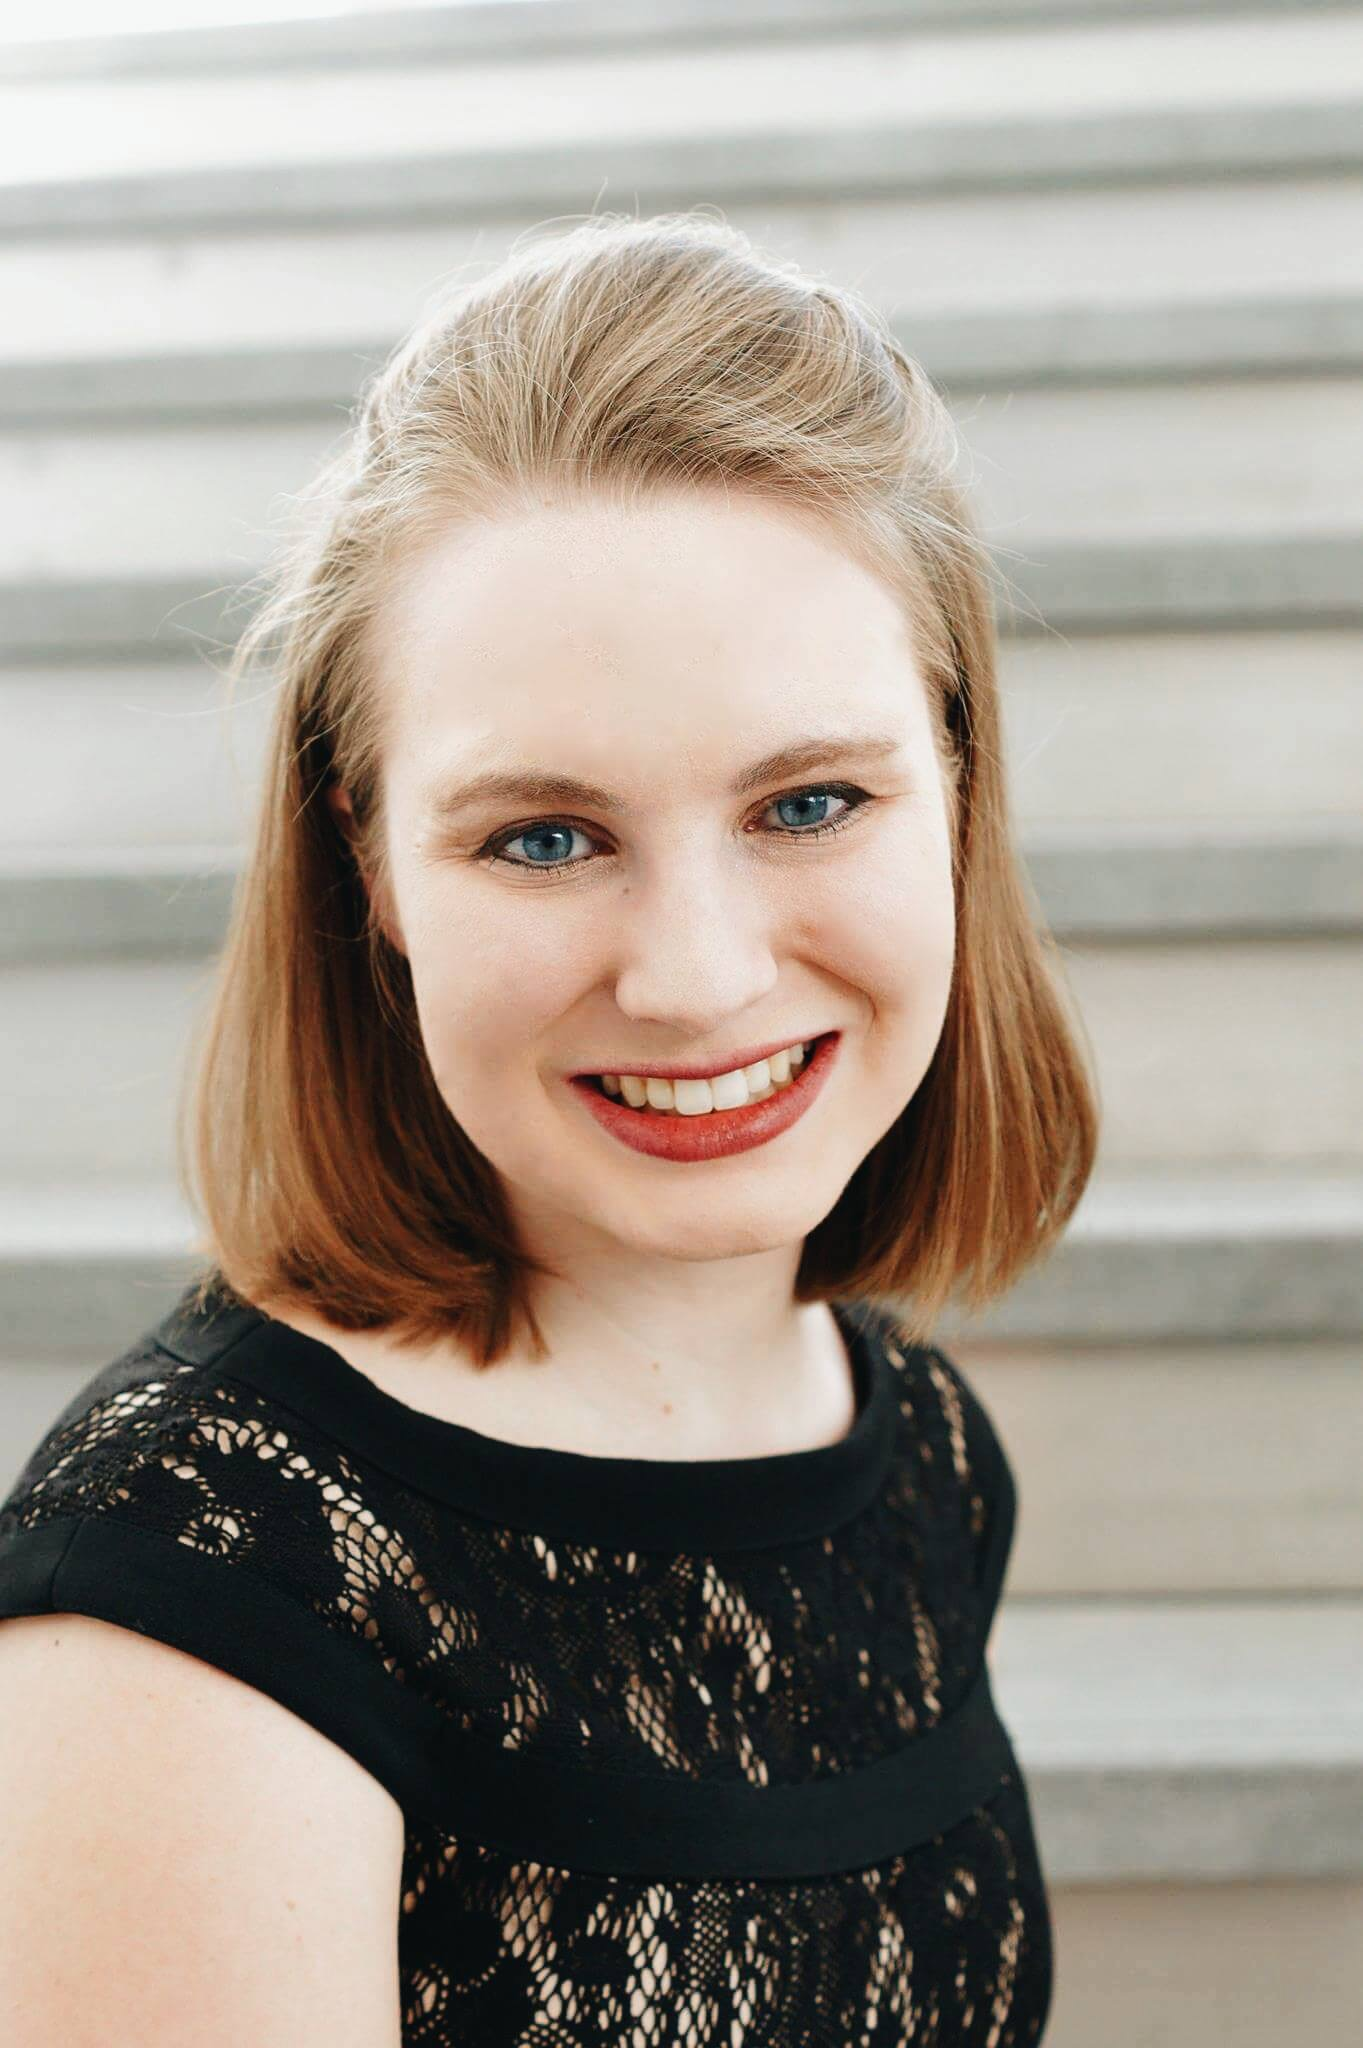 Pianist Taylor Hutchinson is currently pursuing her DMA in Collaborative Piano at Arizona State University, where she studies with Andrew Campbell and holds assistantships in opera and studio accompanying. An avid pianist of vocal music and opera, Taylor has been a pianist and coach with the Bay View Music Festival, The Franco-American Vocal Academy, Musiktheater Bavaria, and the Druid City Opera Workshop. She was the music director and pianist for Mozart's Così fan tutte for the Rochester-based initiative Midsummer Night Opera. In summer 2016 she attended SongFest in Los Angeles, where she worked with collaborative pianists Margo Garrett, Martin Katz, and Roger Vignoles. She made her NPR debut as a fellow at SongFest's inaugural Hidden Valley Winter Institute in January 2017 under the mentorship of Sir Thomas Allen and Graham Johnson.  Taylor holds the master's degree in Accompanying and Chamber Music from the Eastman School of Music and bachelor's degrees in Piano Performance and Mathematics from Virginia Tech. - For more, visit Taylor's website.